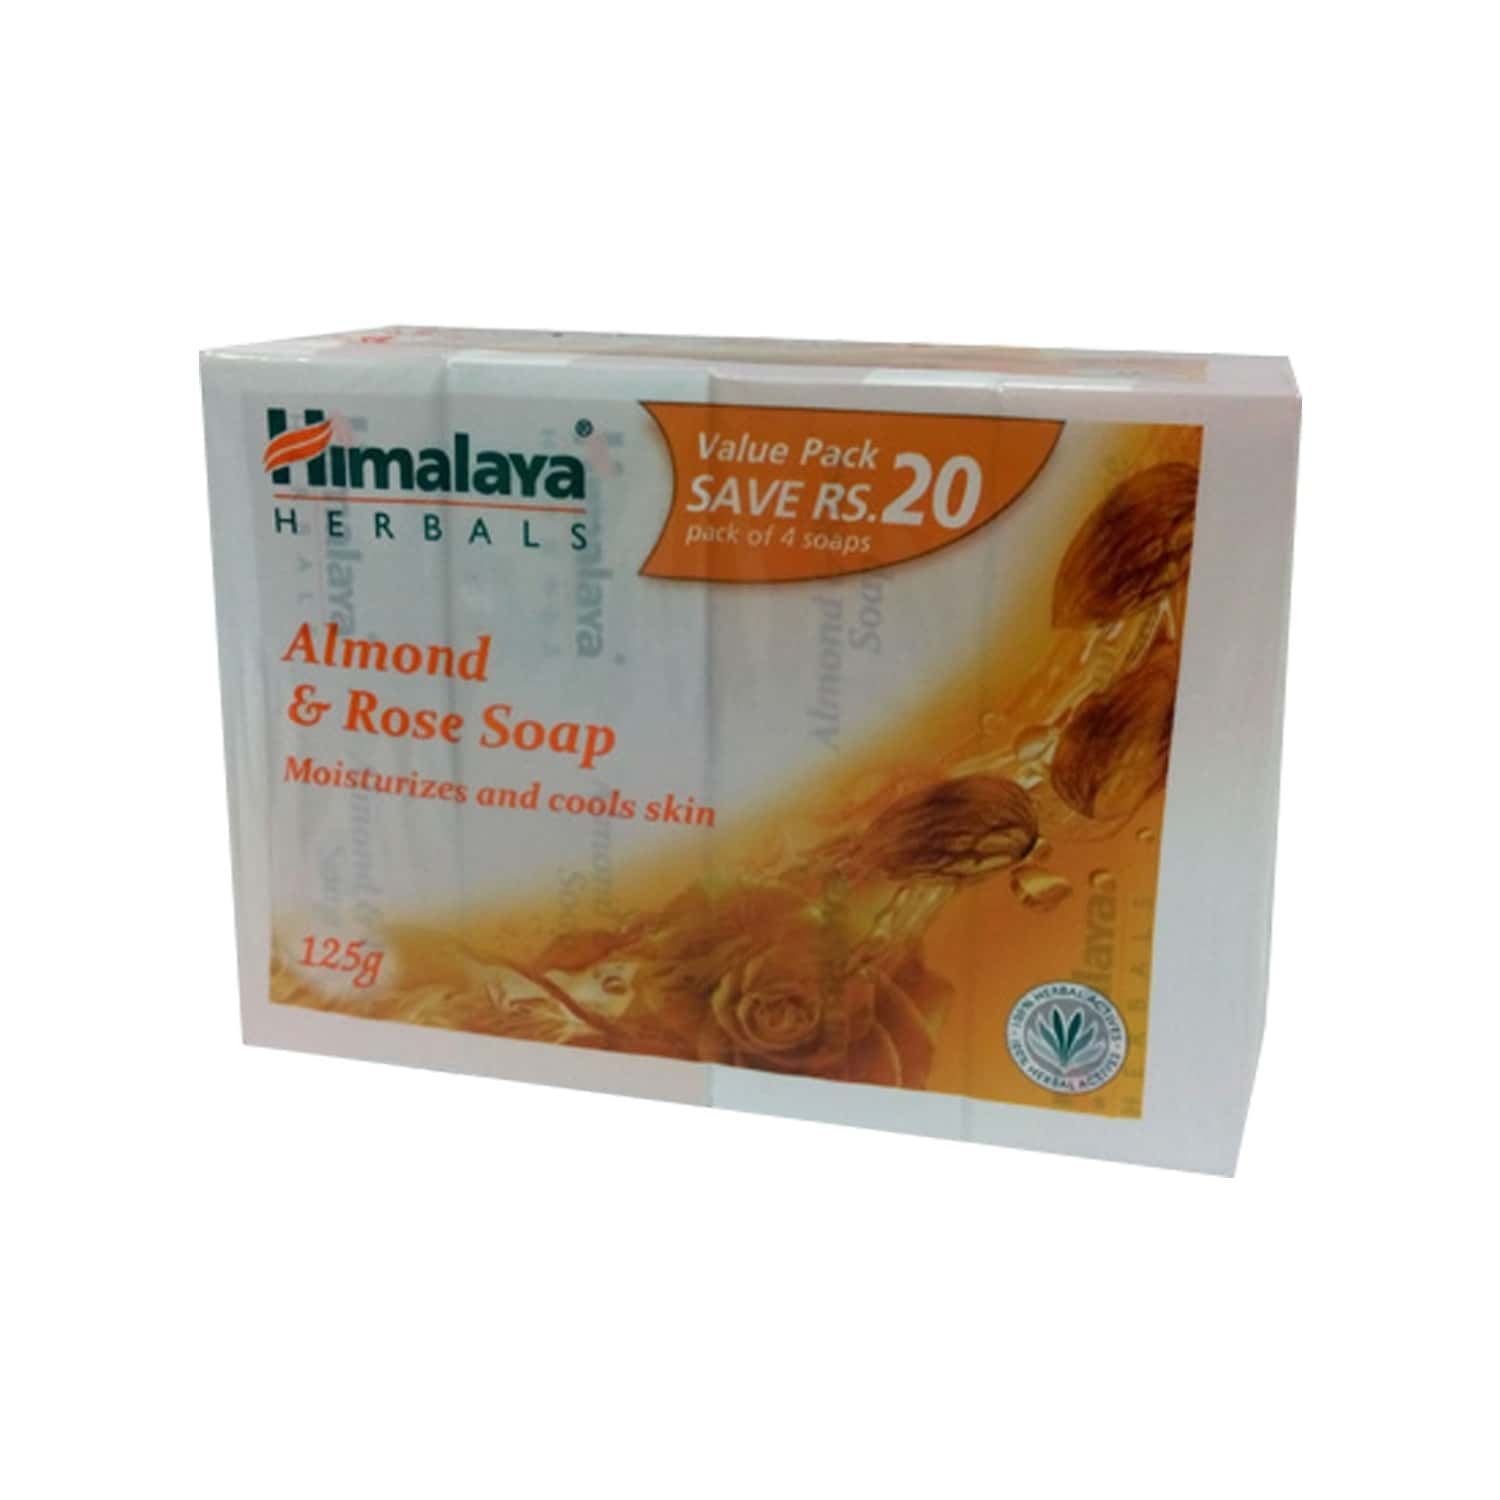 Himalaya Almond & Rose Soap 125gx4 (value Pack Save Rs.20/-)